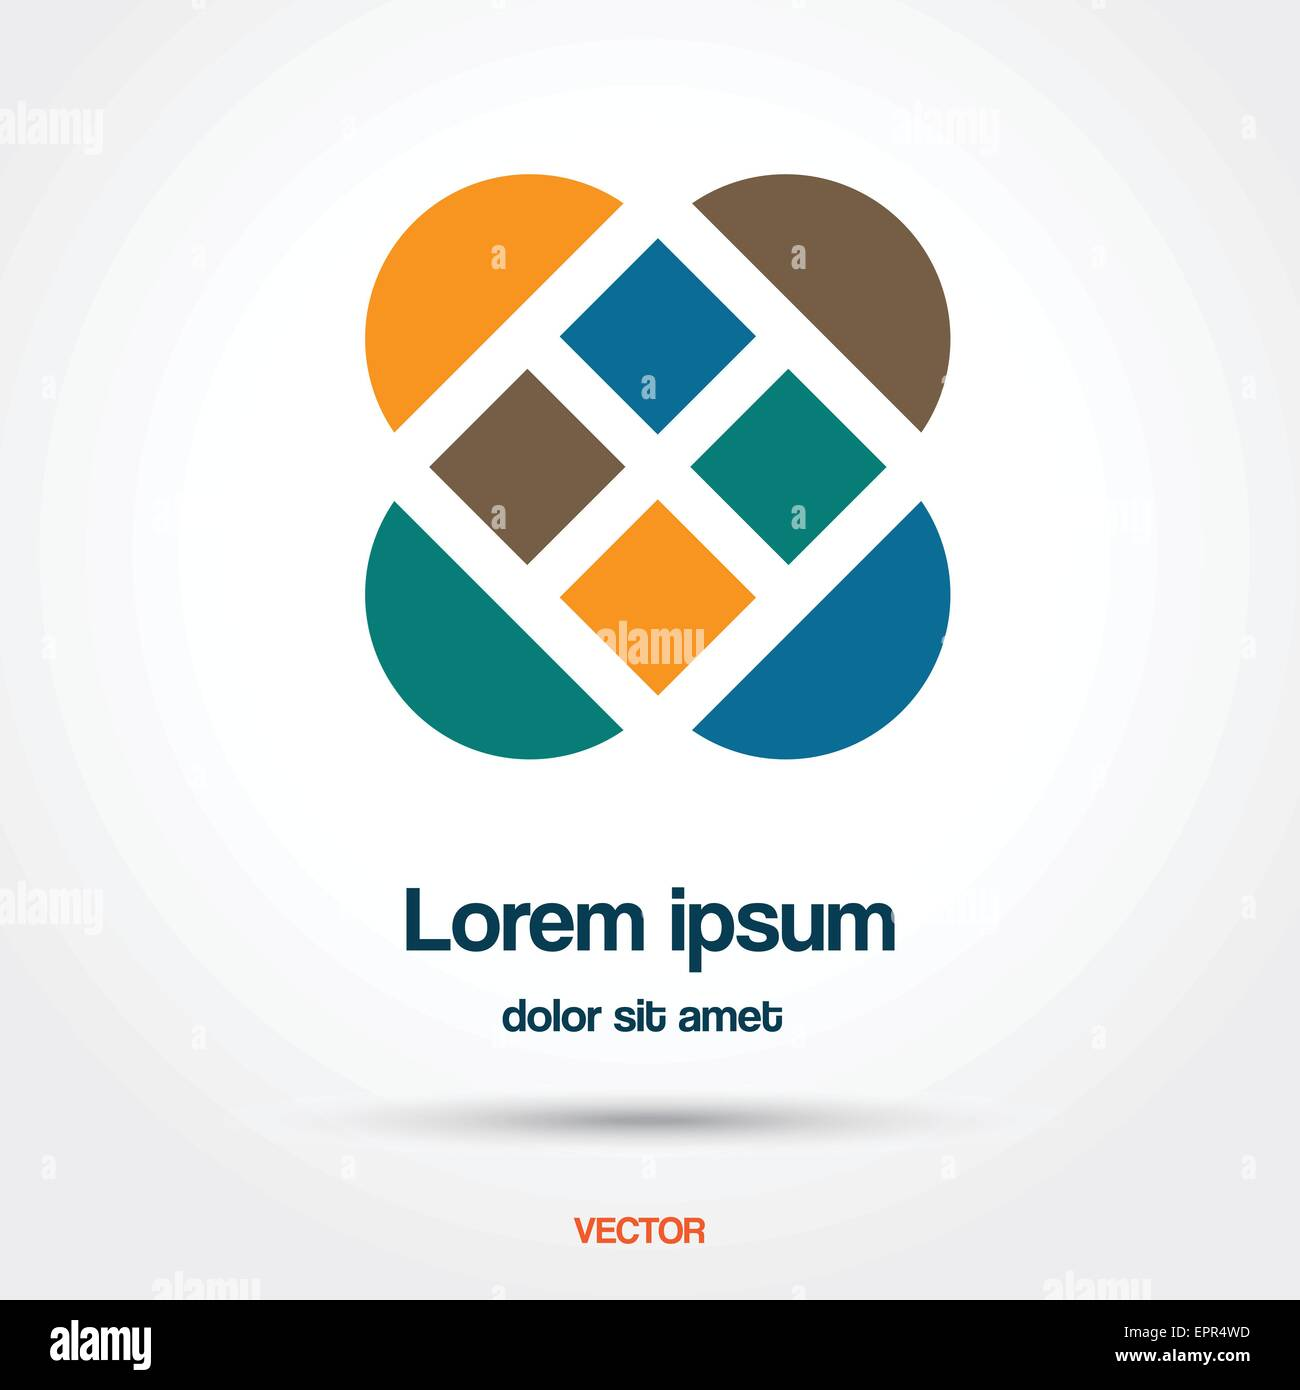 Abstract creative vector illustration logo template - Stock Image